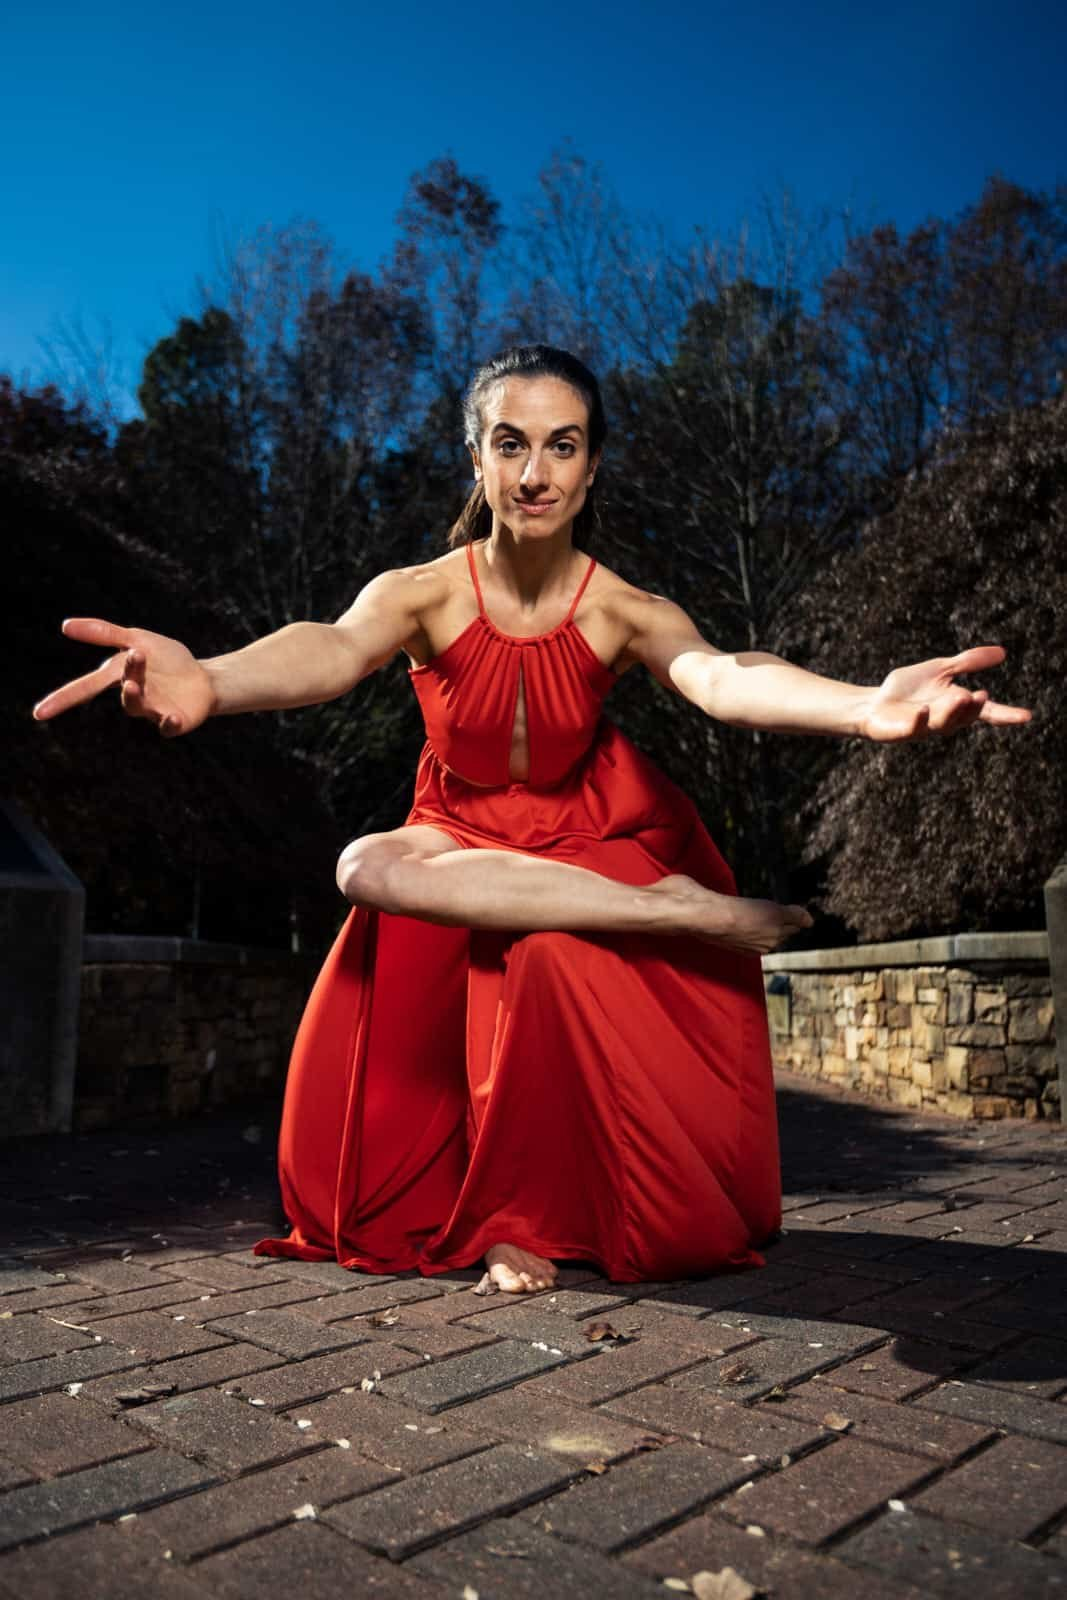 female ballet dancer in red dress dancing in stone courtyarrdr